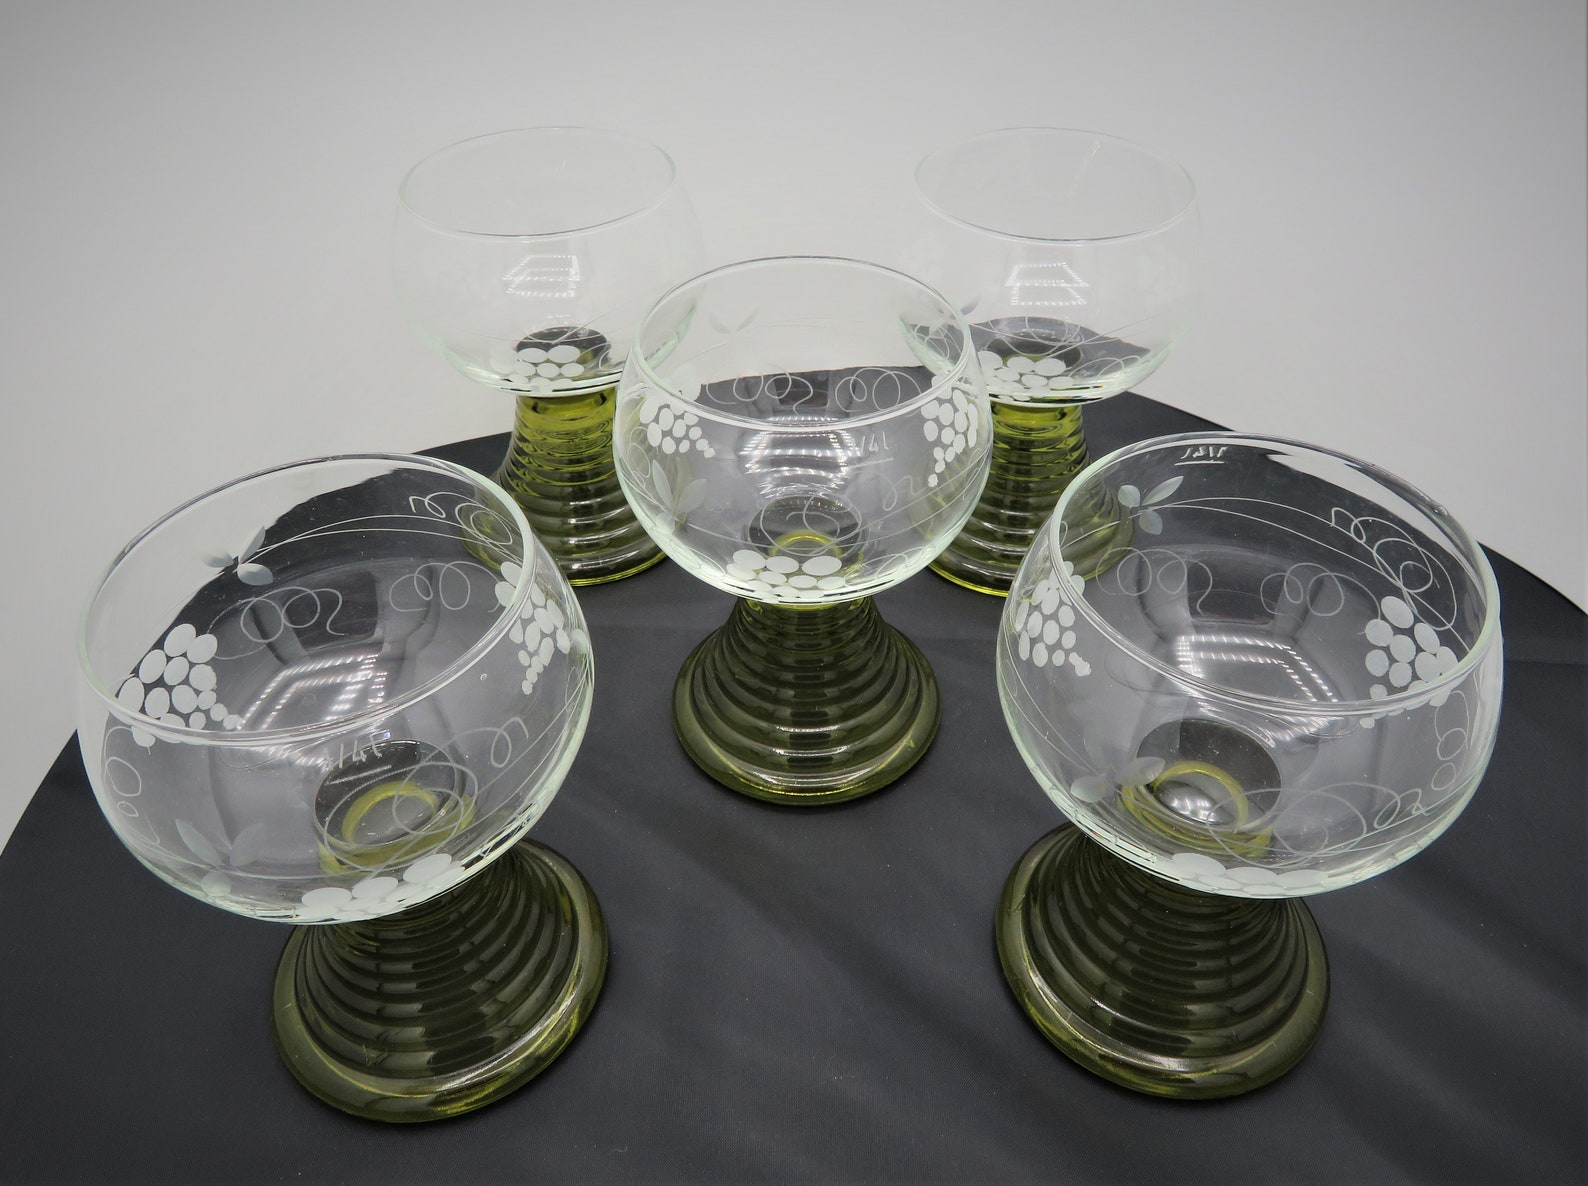 Set of 5 Large Vintage ROEMER Wine Glasses Green Beehive Stem Etched Grapes 5